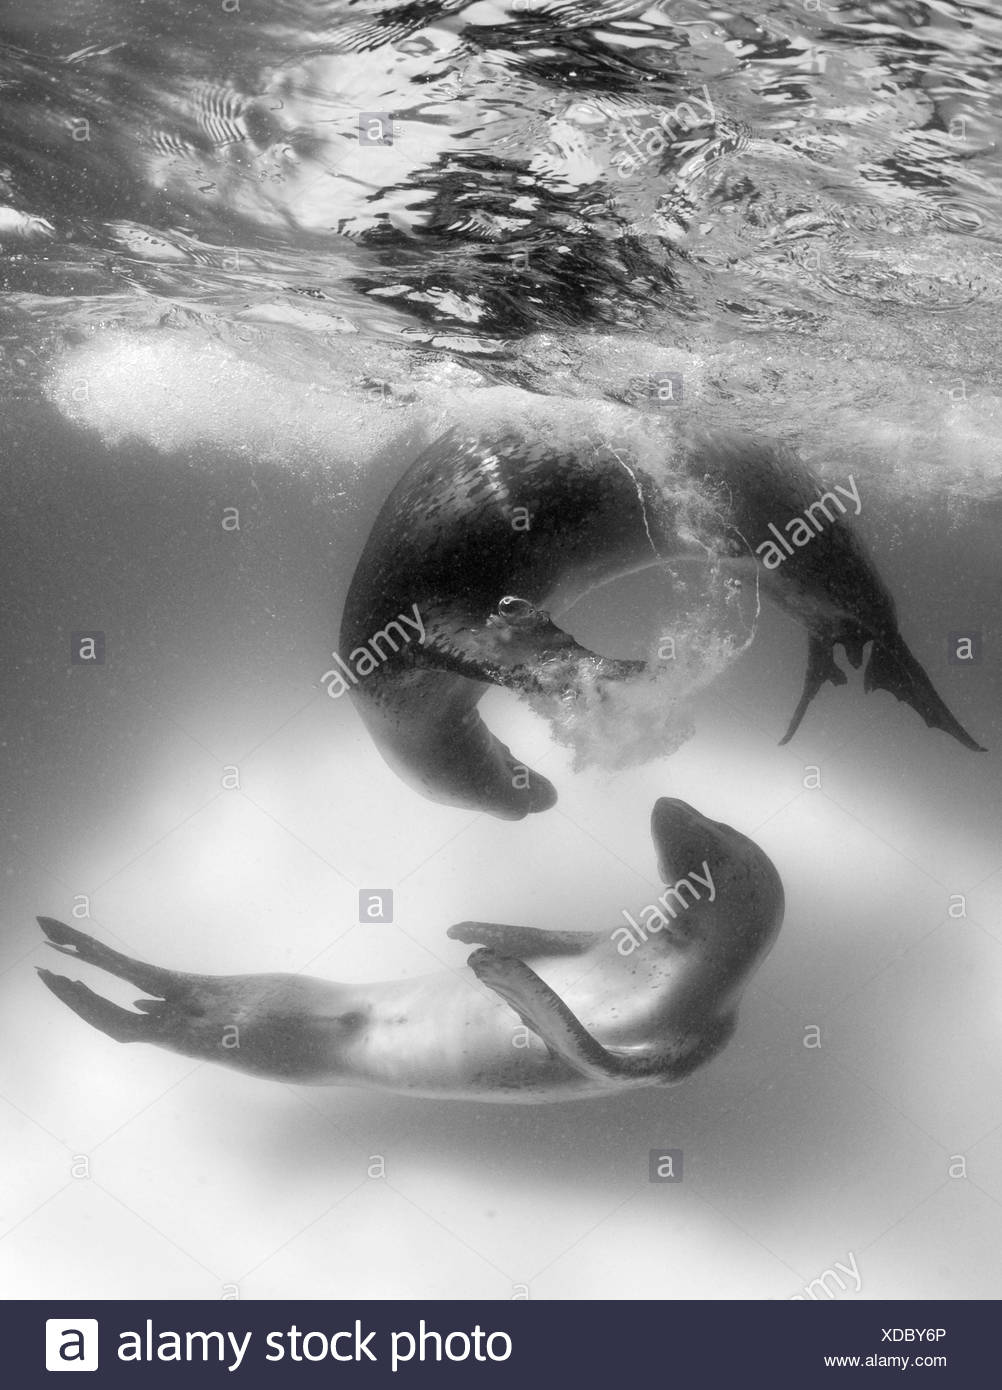 Leopard Seal - Stock Image